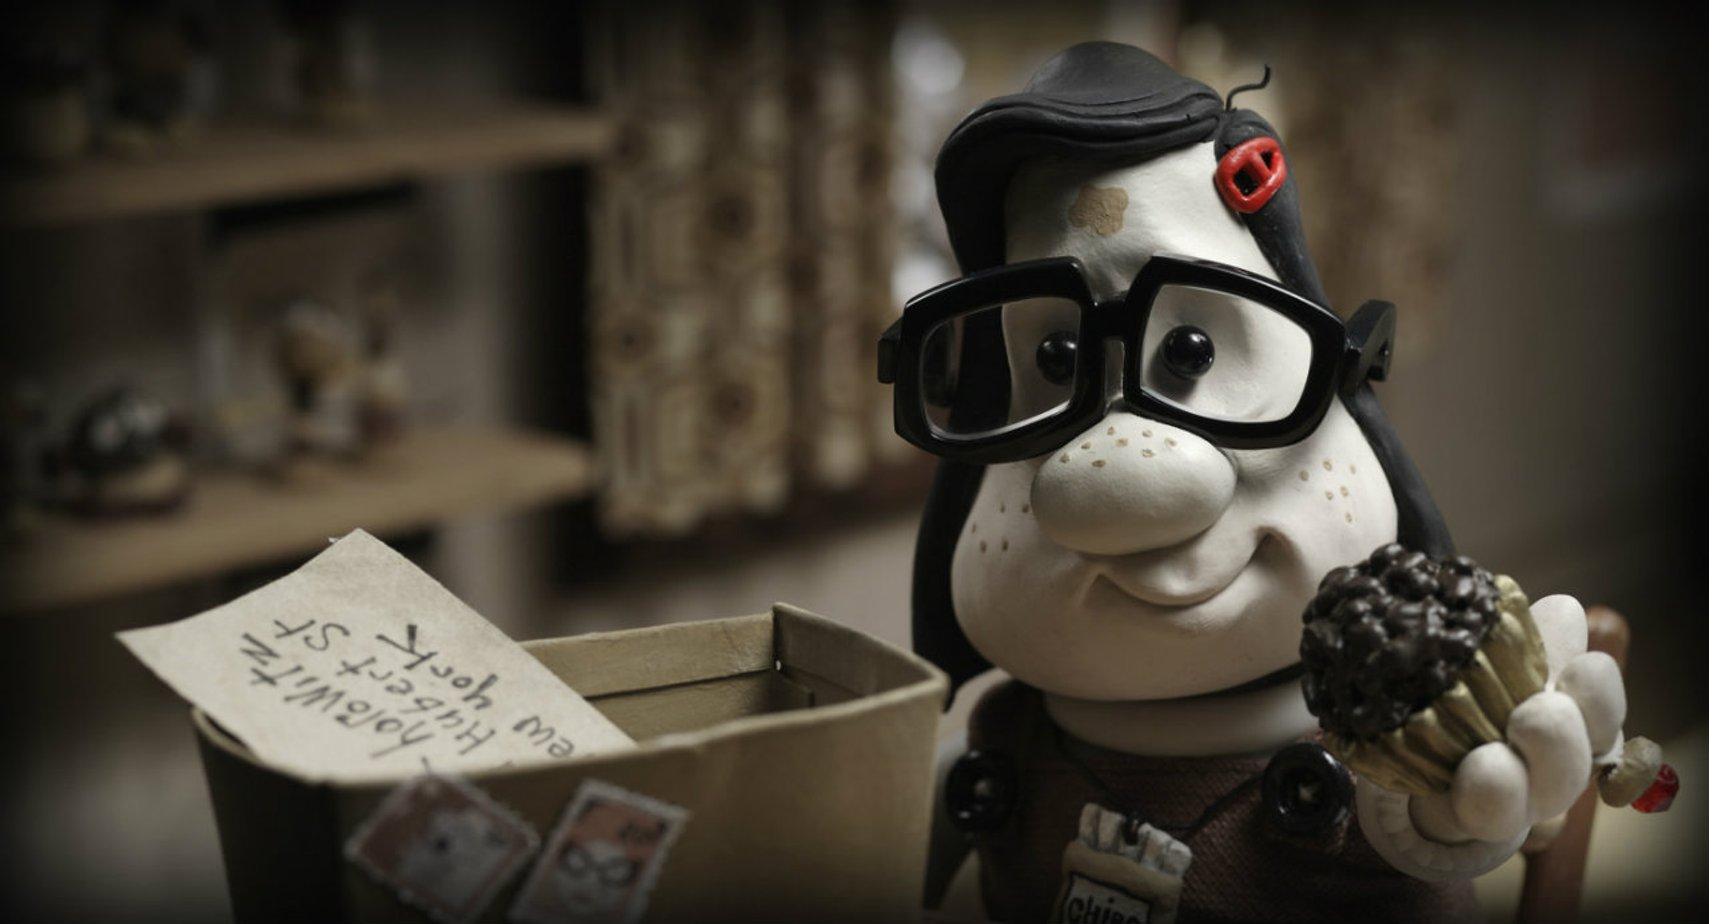 a critique of the movie mary and max by adam eliot Academy award-winning harvie krumpet director adam elliot returns to the world of clay animation with this simple tale of the innocent correspondence between a portly eight year old girl from the suburbs of melbourne and a morbidly obese, middle-aged jewish new yorker suffering from asperger's syndrome.